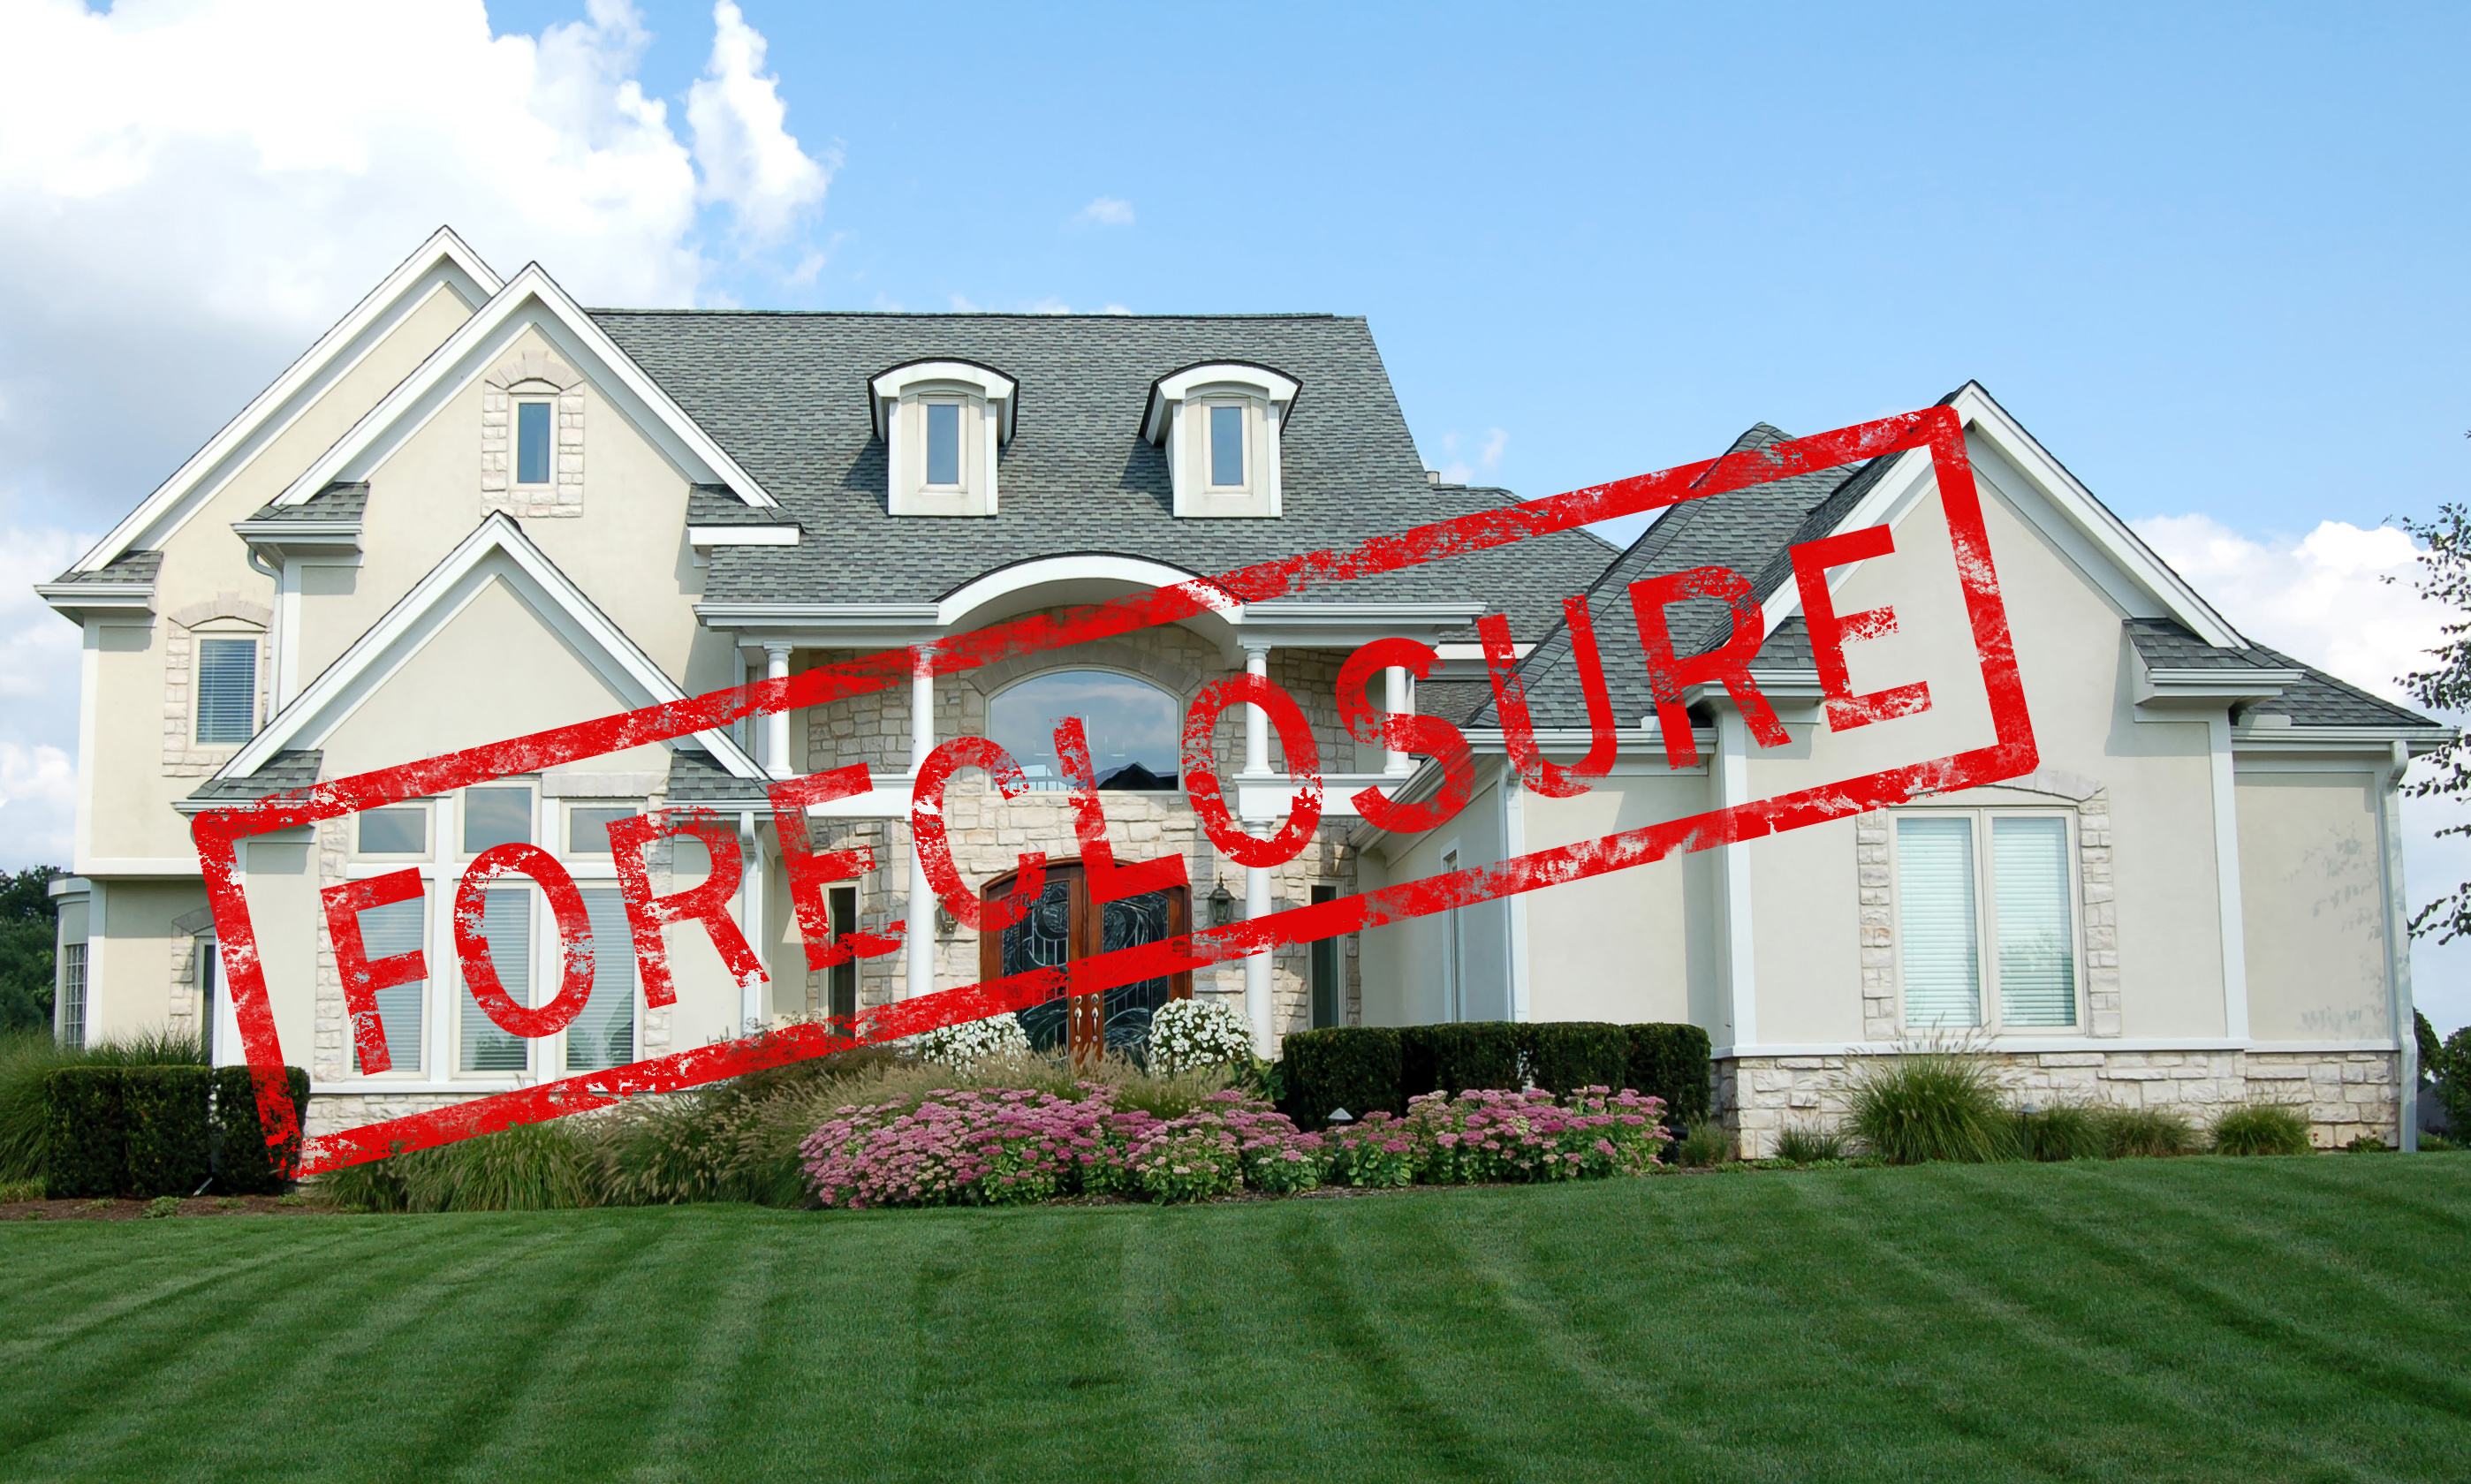 Call Homeowner Appraisal Services when you need valuations regarding Saint Johns foreclosures